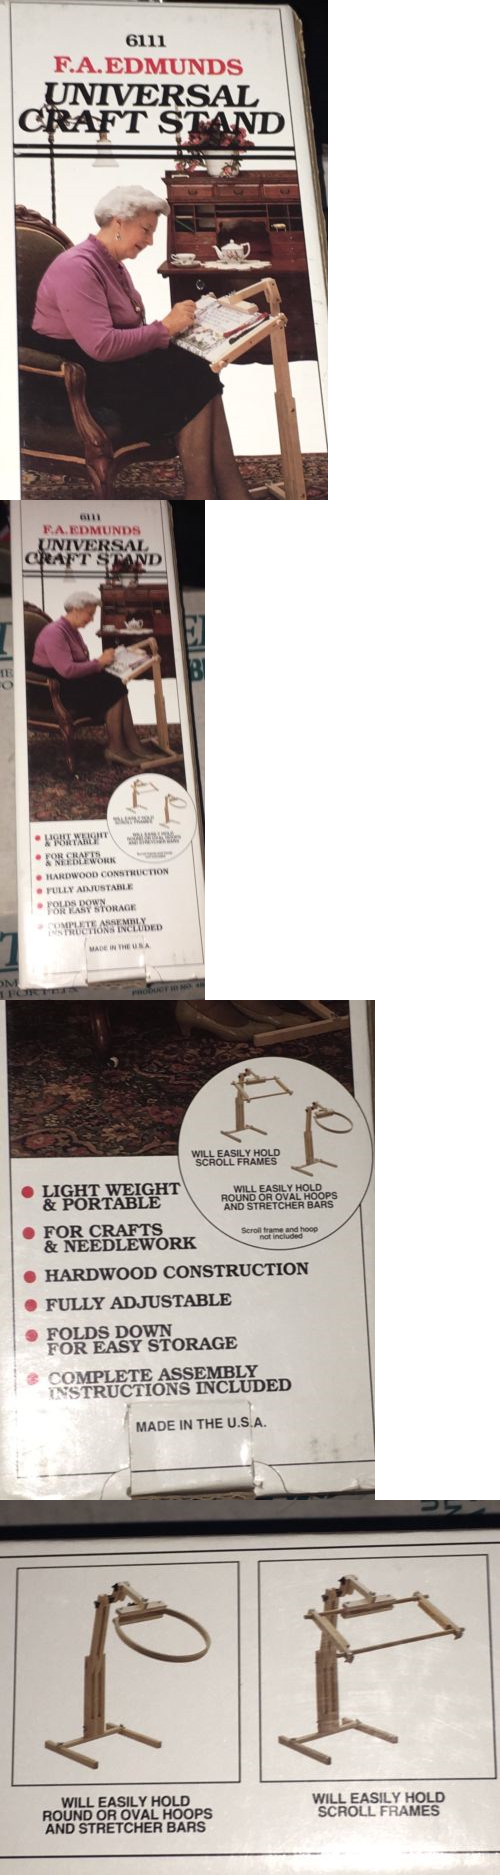 Hand Embroidery Hoops and Frames 160721: New Fa Edmunds Universal ...